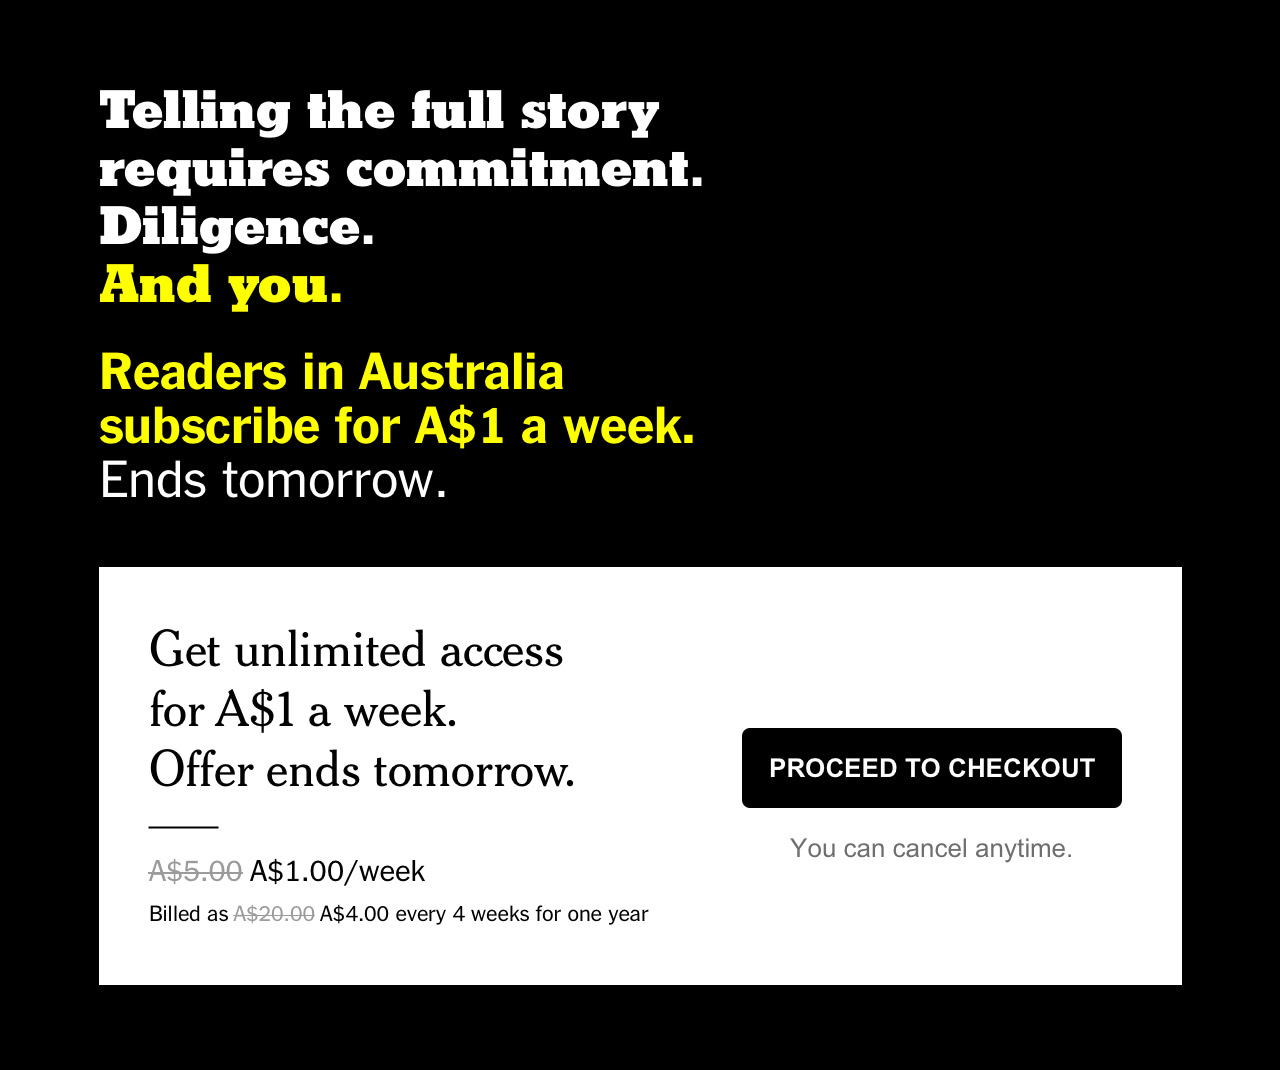 Telling the full story requires commitment. Diligence. And you. Readers in Australia subscribe for A$1 a week. Ends tomorrow.